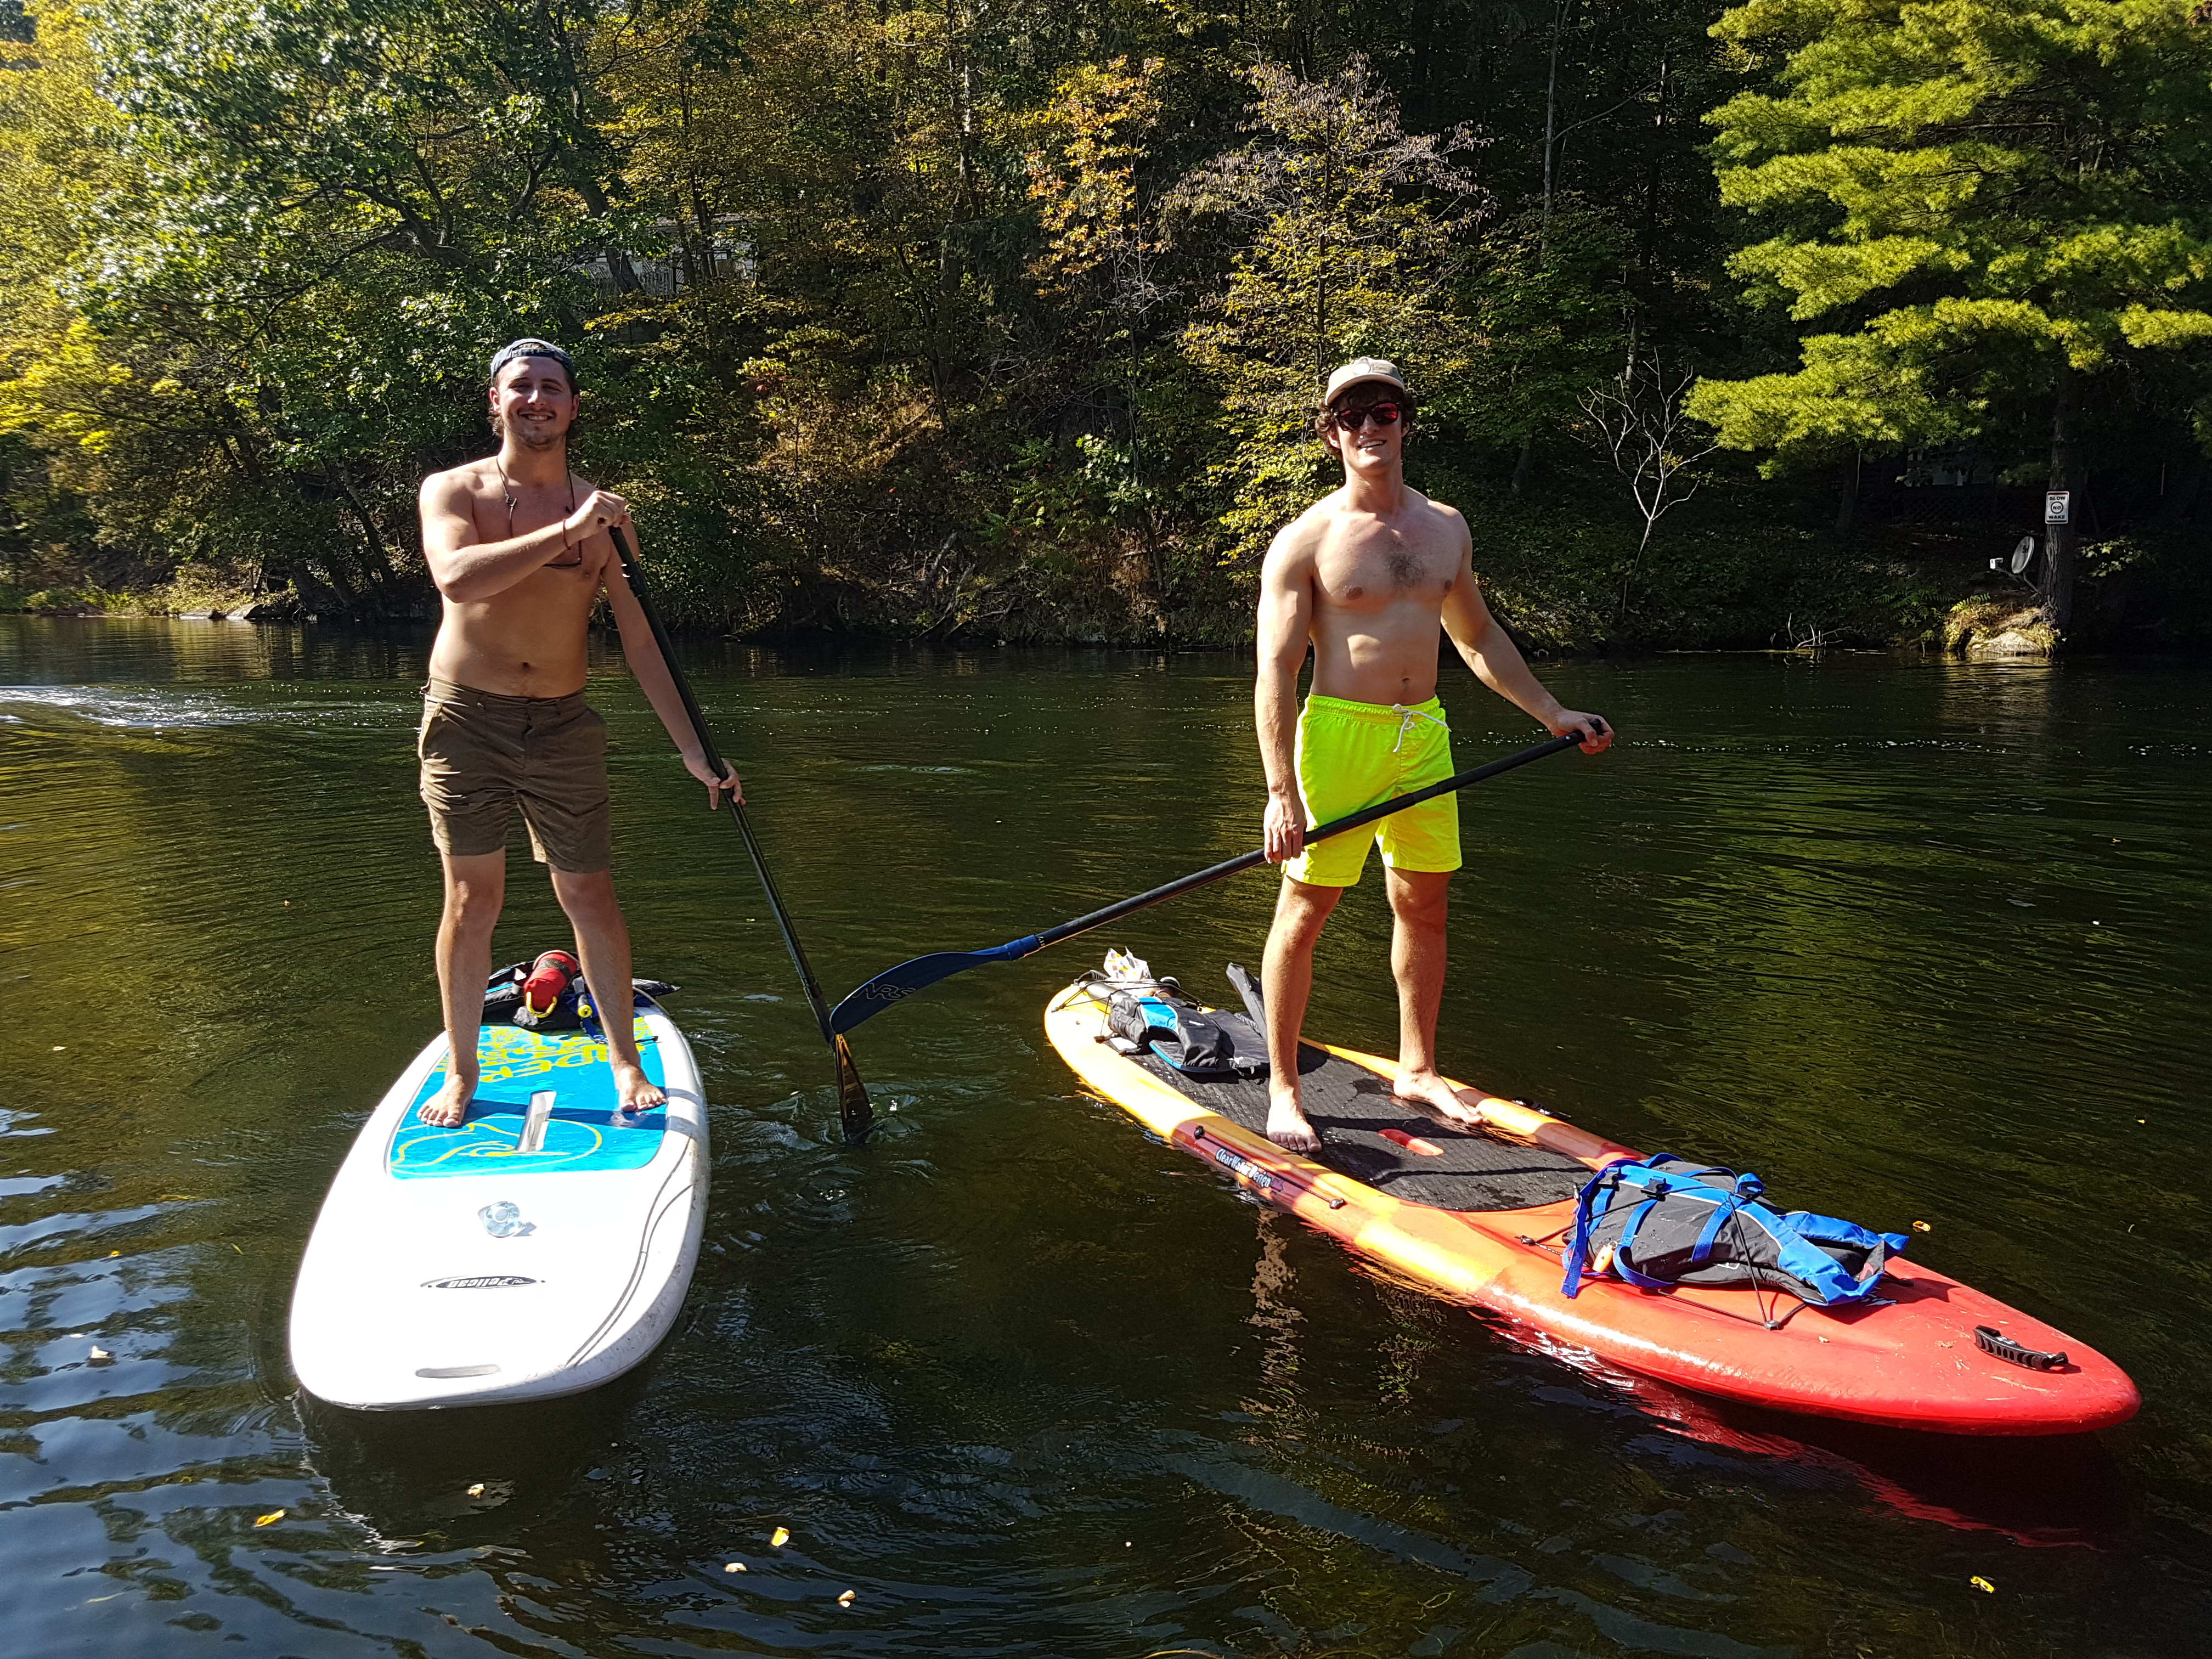 Image of two people on a paddleboard.